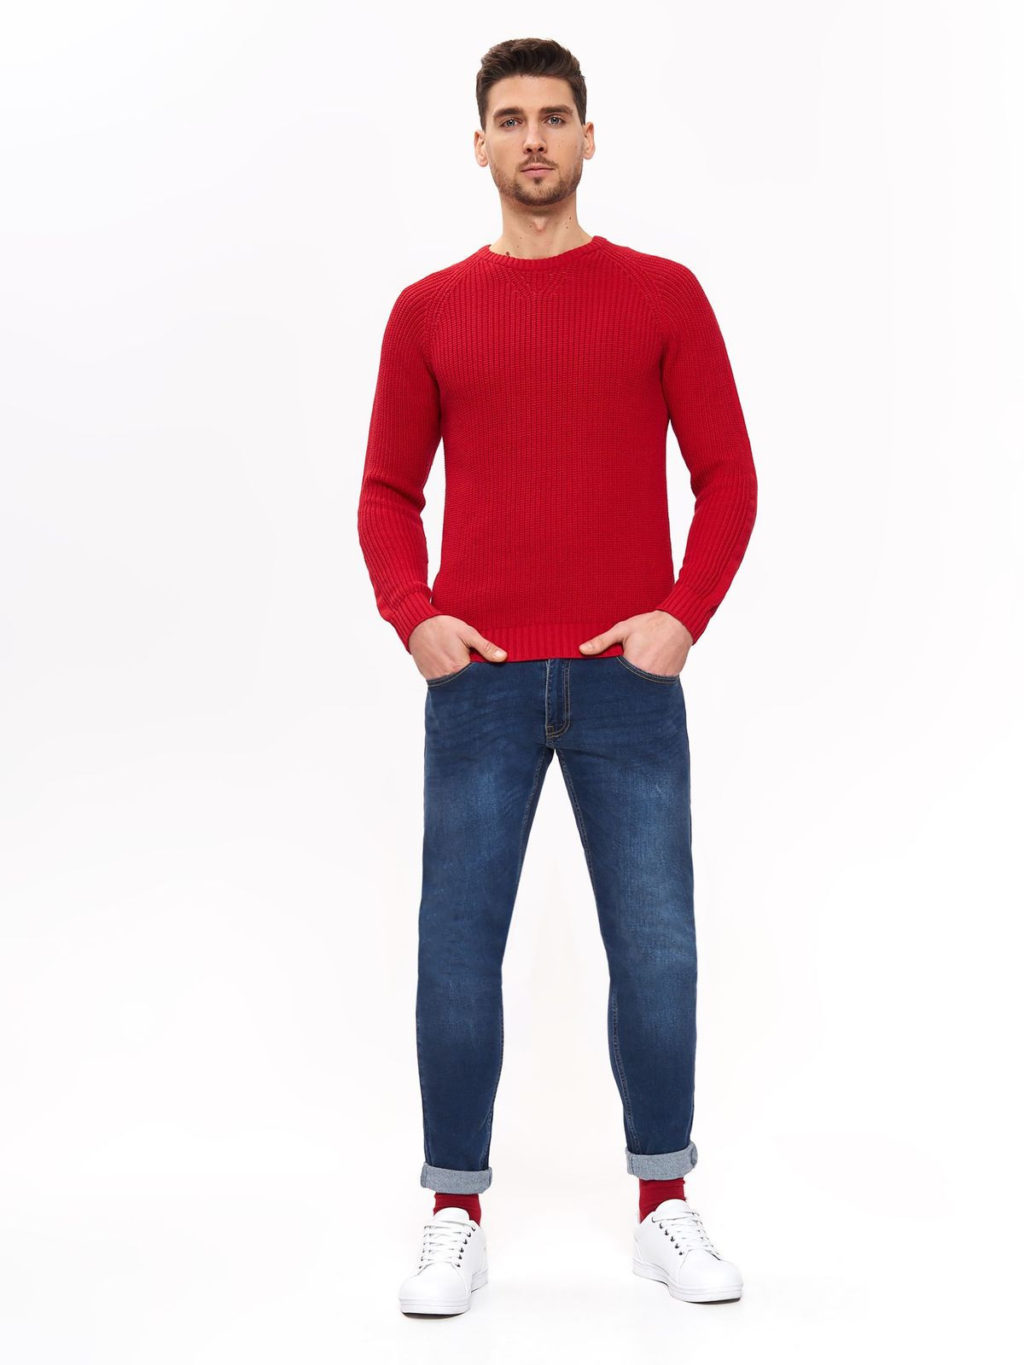 T-shirt-and-jean-trousers.-3-1024x1365 120+ Fashion Trends and Looks for College Students in 2021